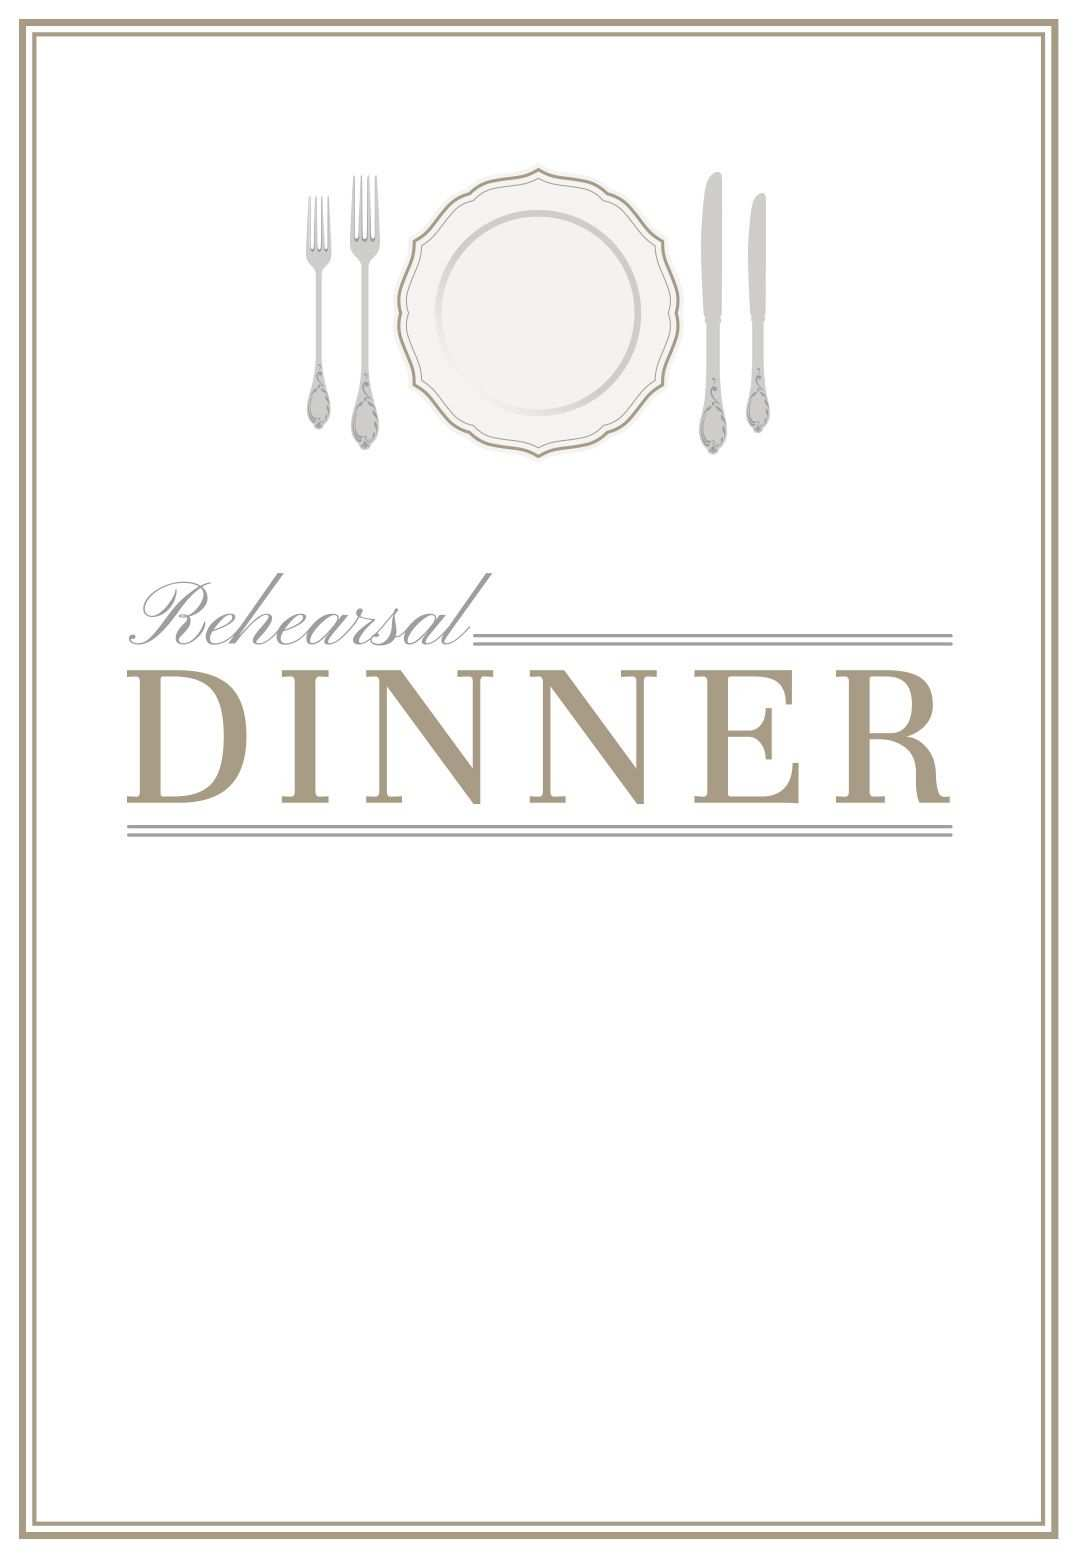 5 Format Dinner Invitation Template Free PSD File by Dinner